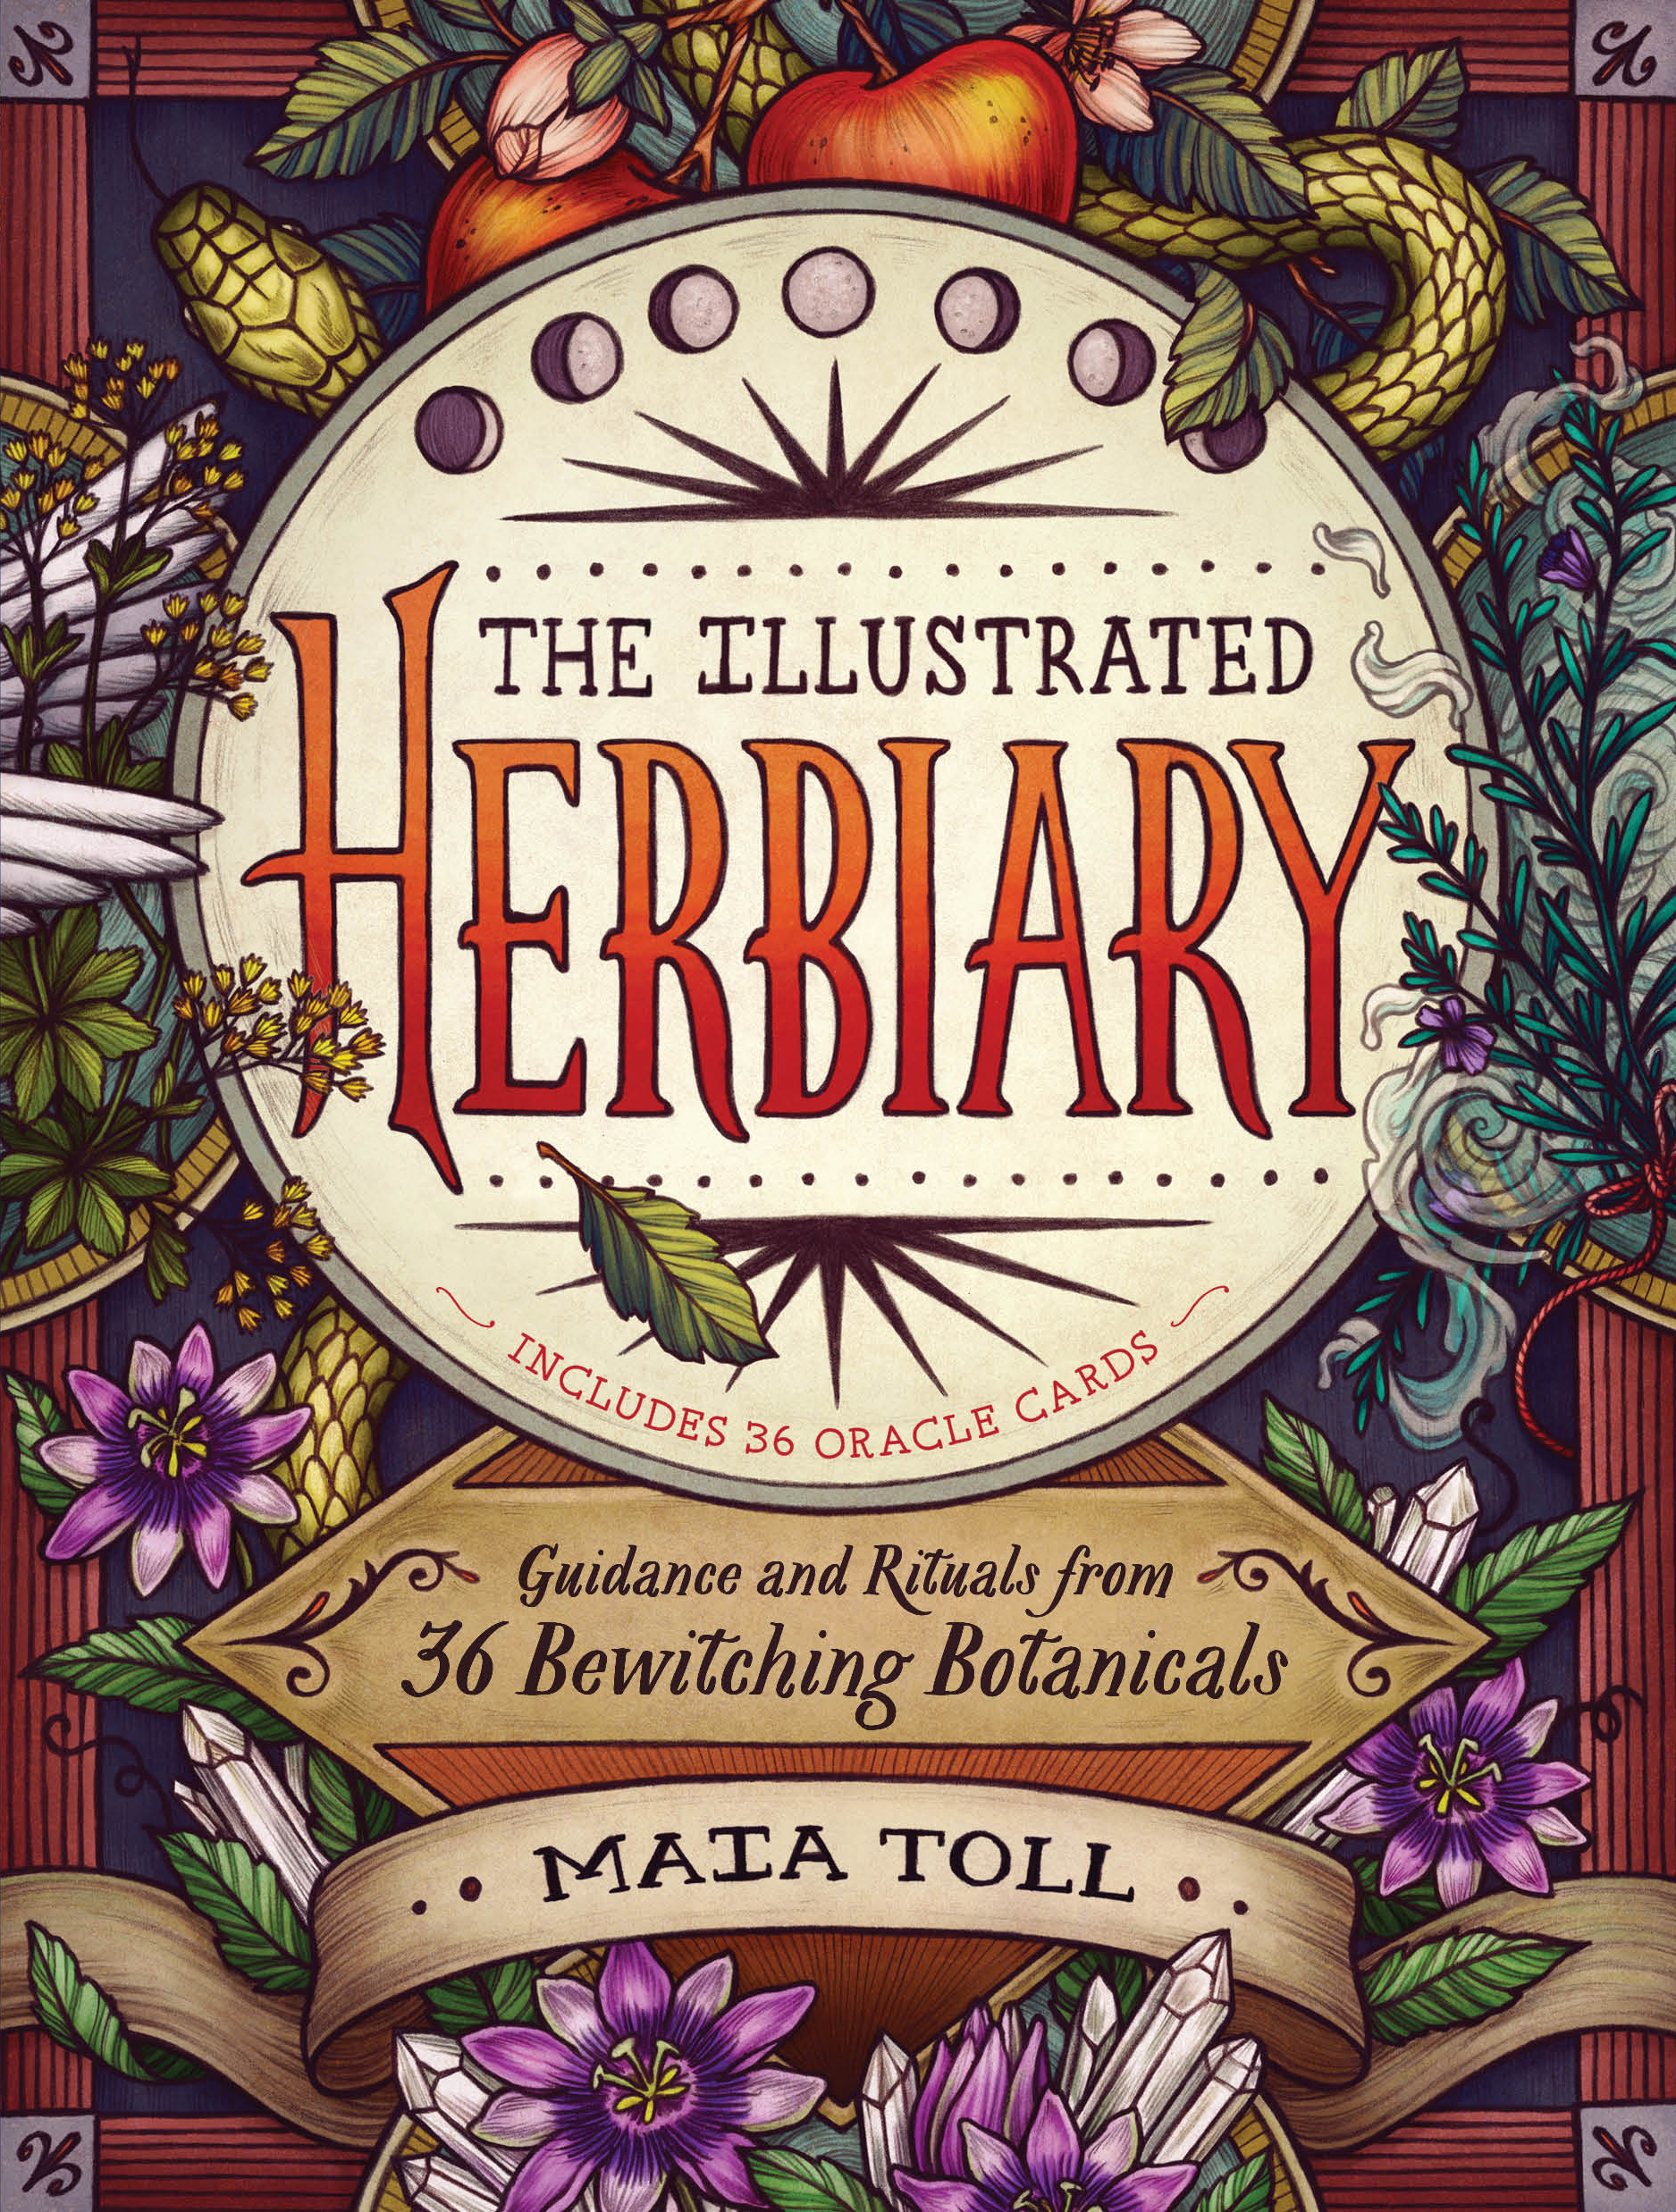 The Illustrated Herbiary Guidance and Rituals from 36 Bewitching Botanicals - Maia Toll